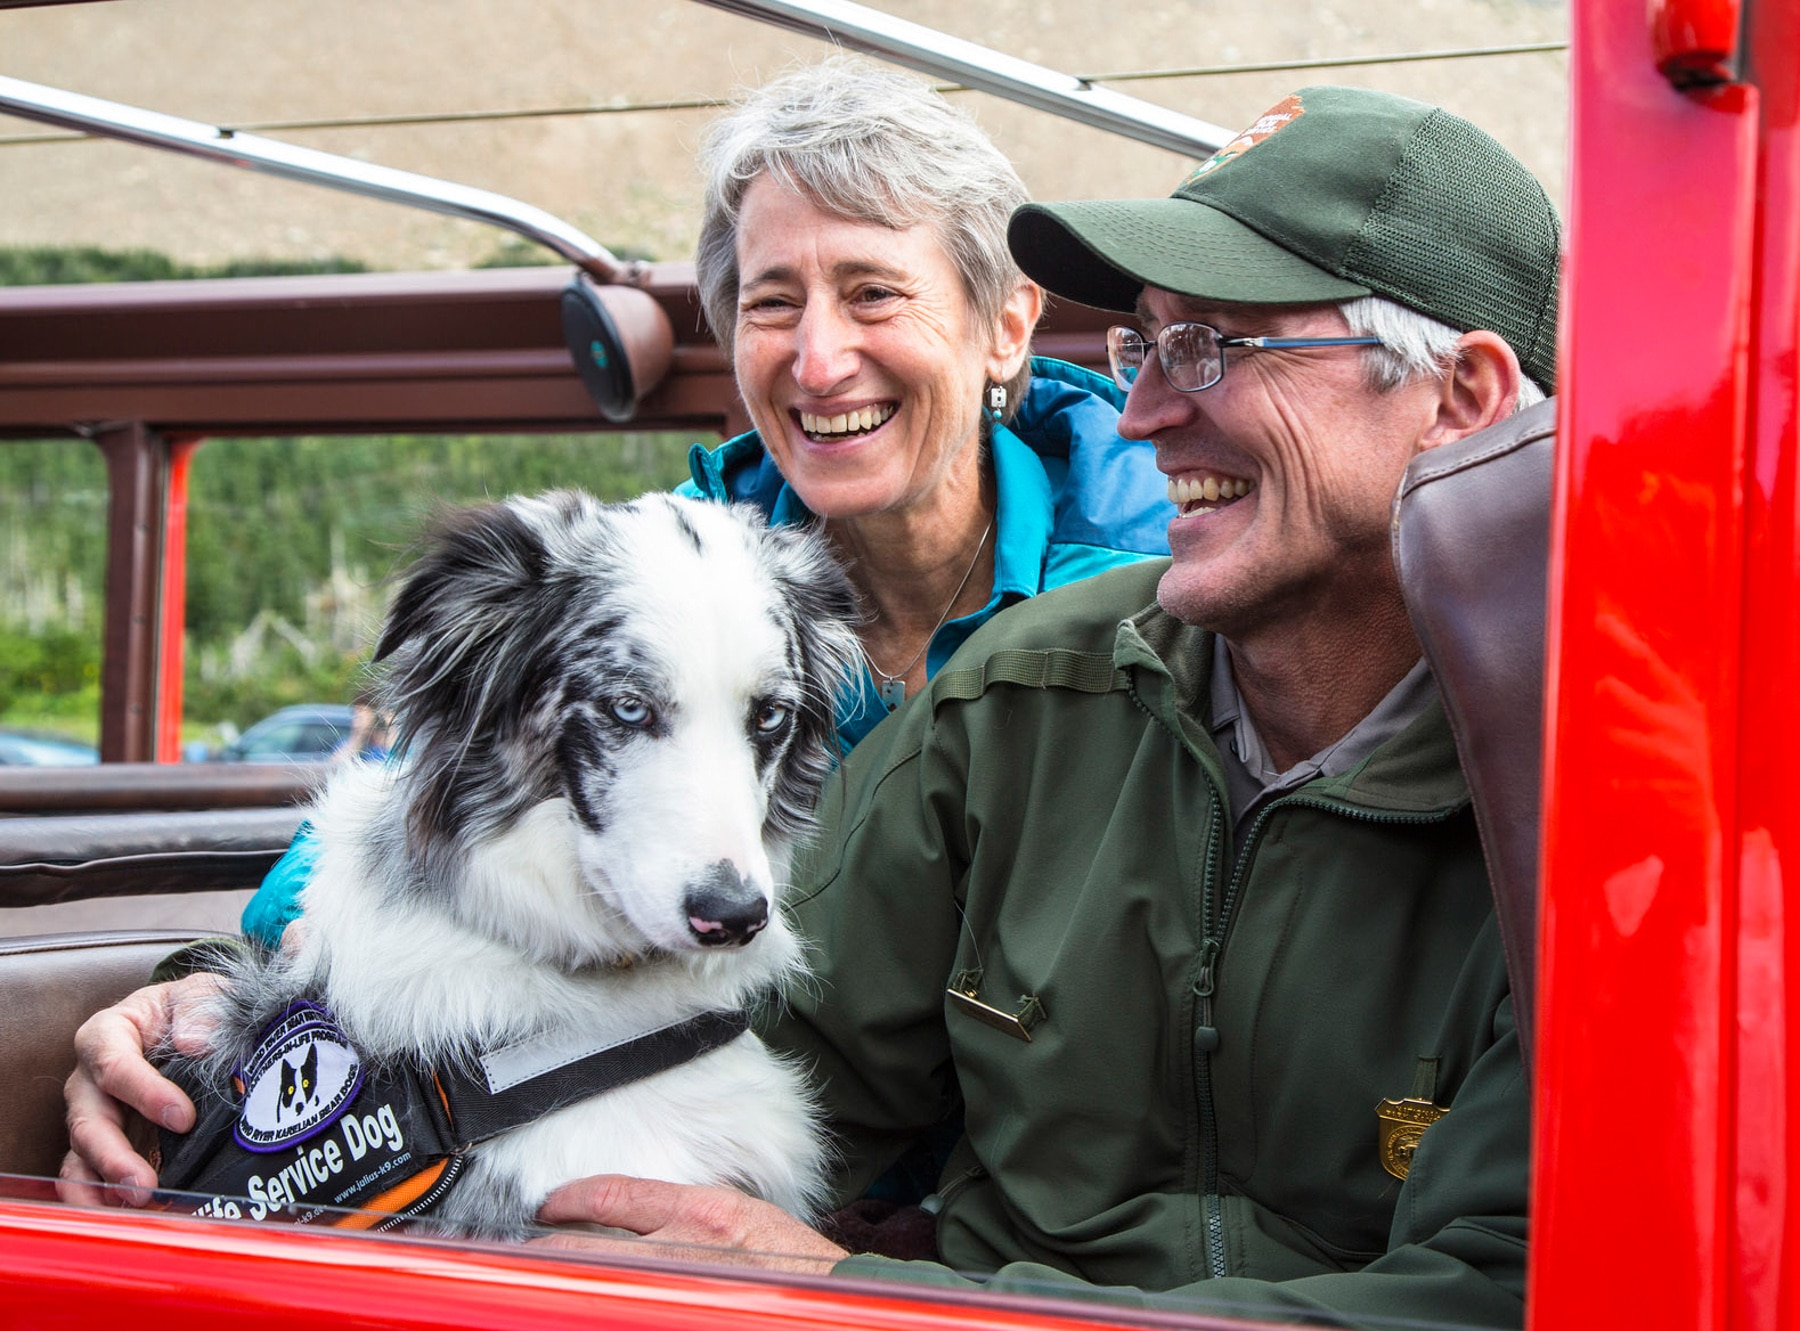 Two people holding dog while riding in car (NPS/Jacob W. Frank)